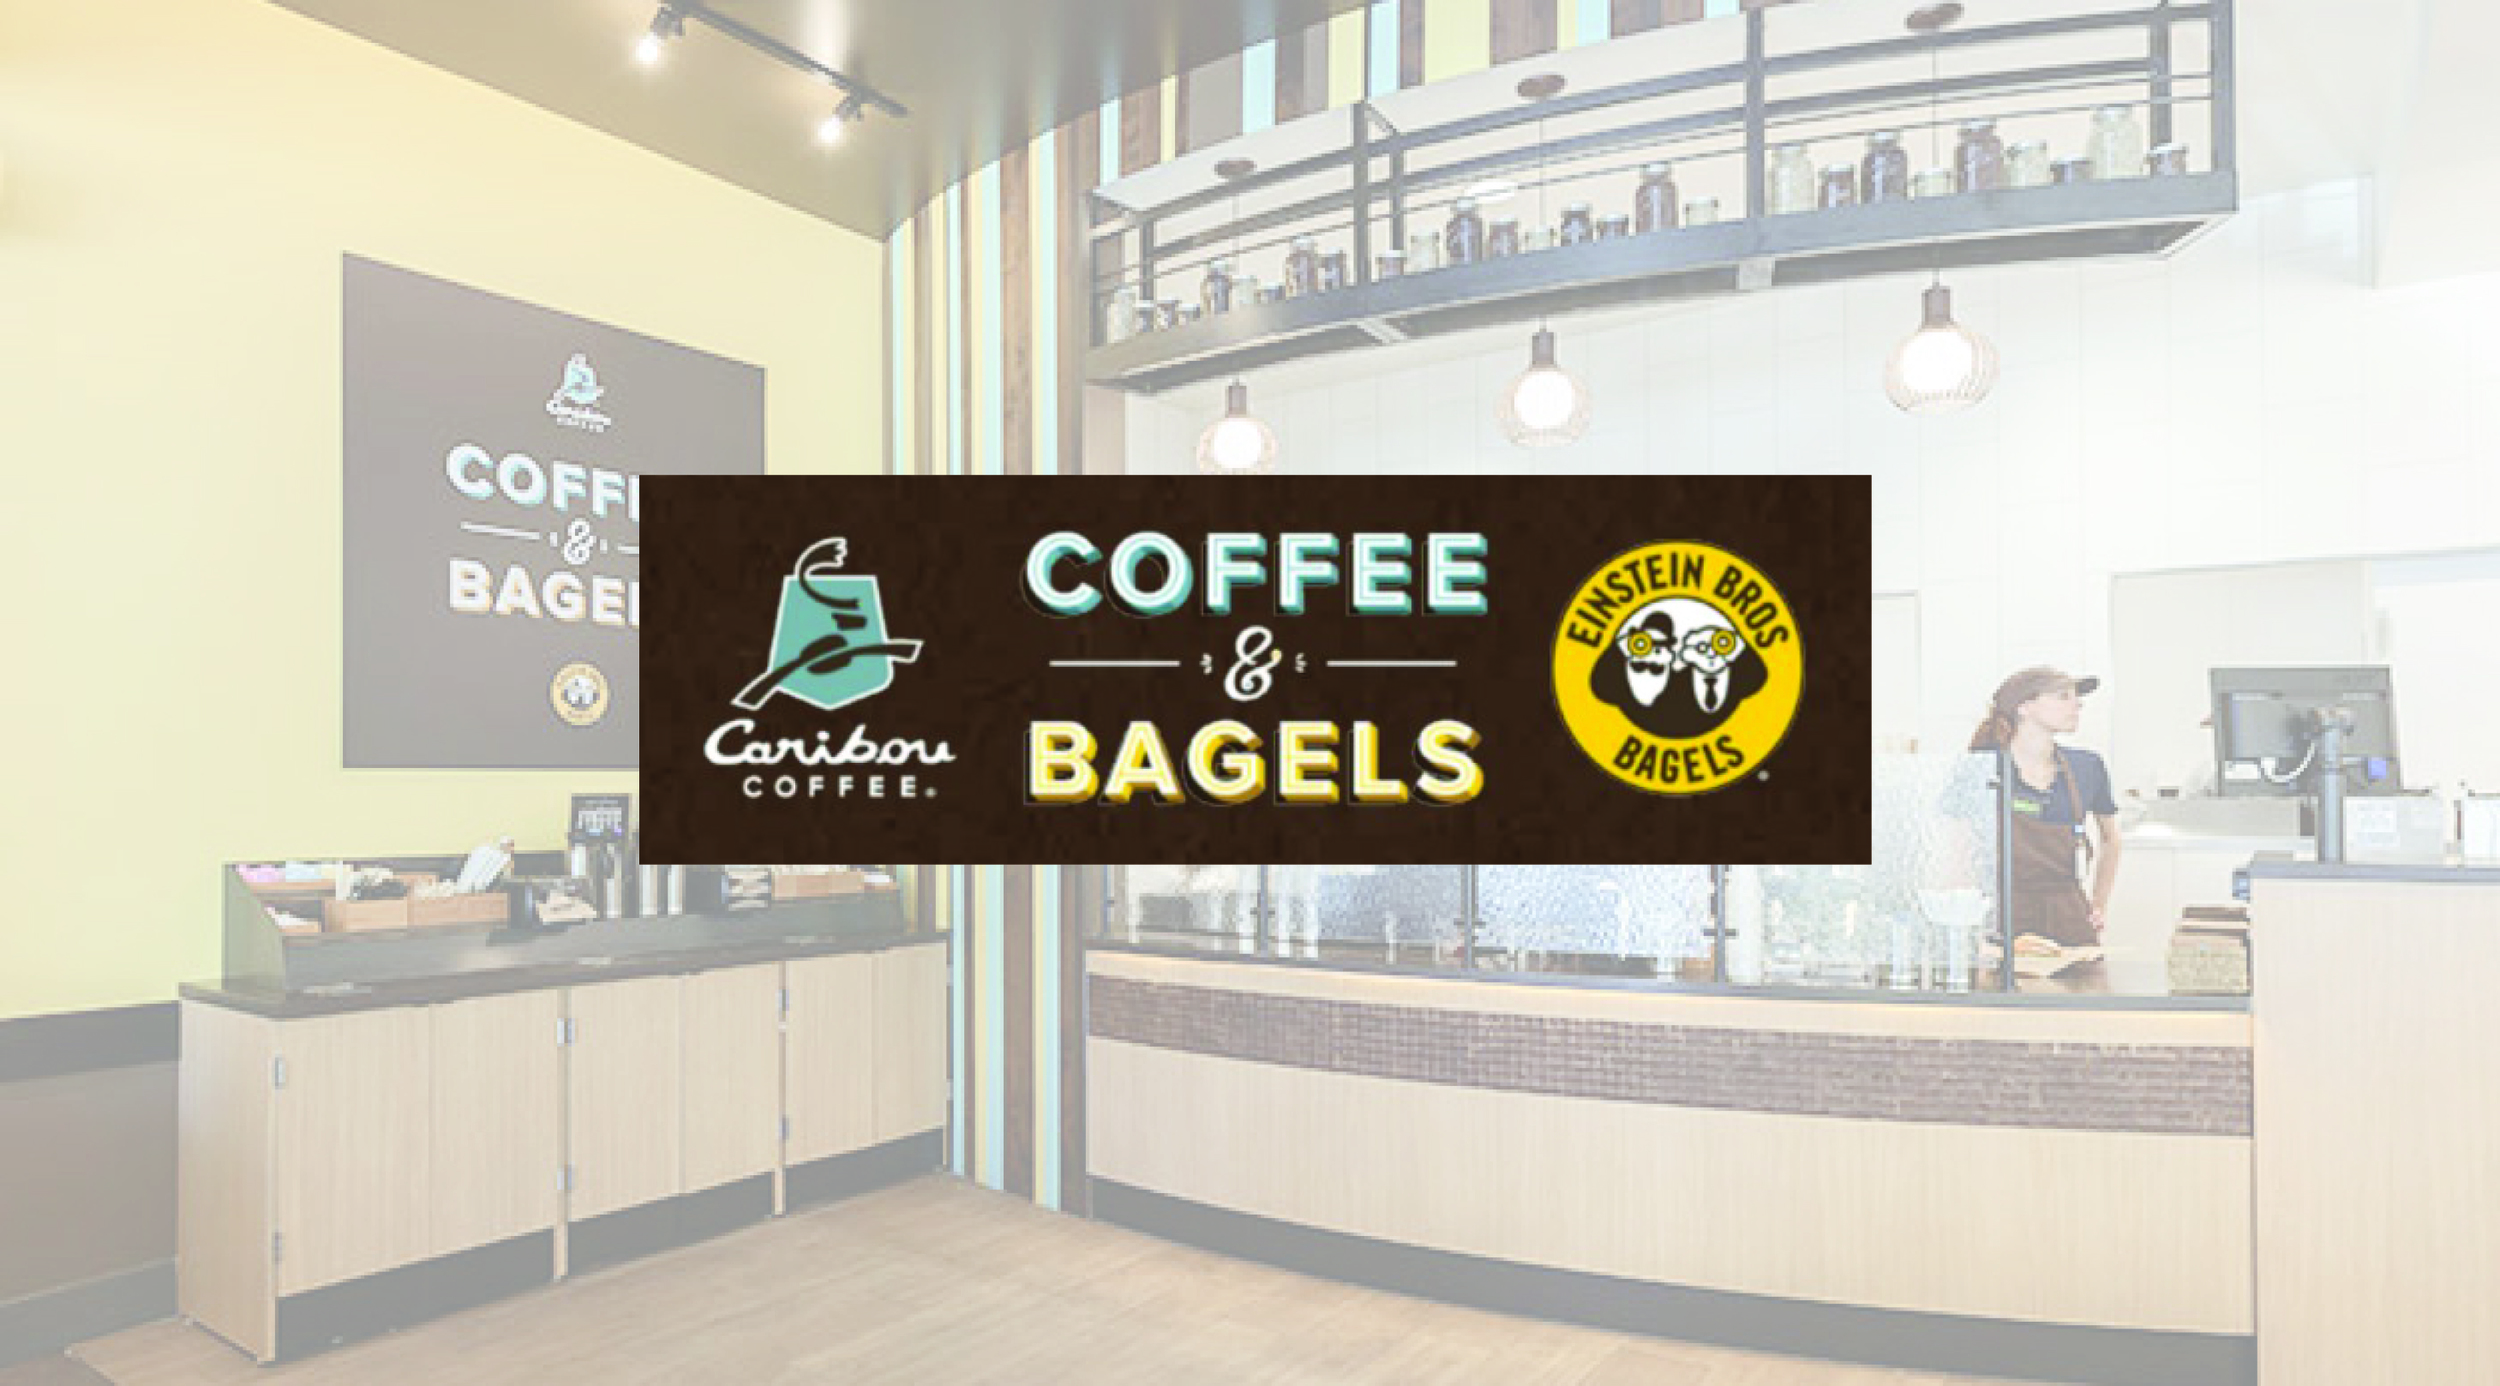 CARIBOU COFFEE & EINSTEIN BROTHERS BAGELS                                                   COMMERCIAL   KENWOOD AVE & ARROWHEAD RD   DULUTH                                              PLANNED COMPLETION: FALL 2016